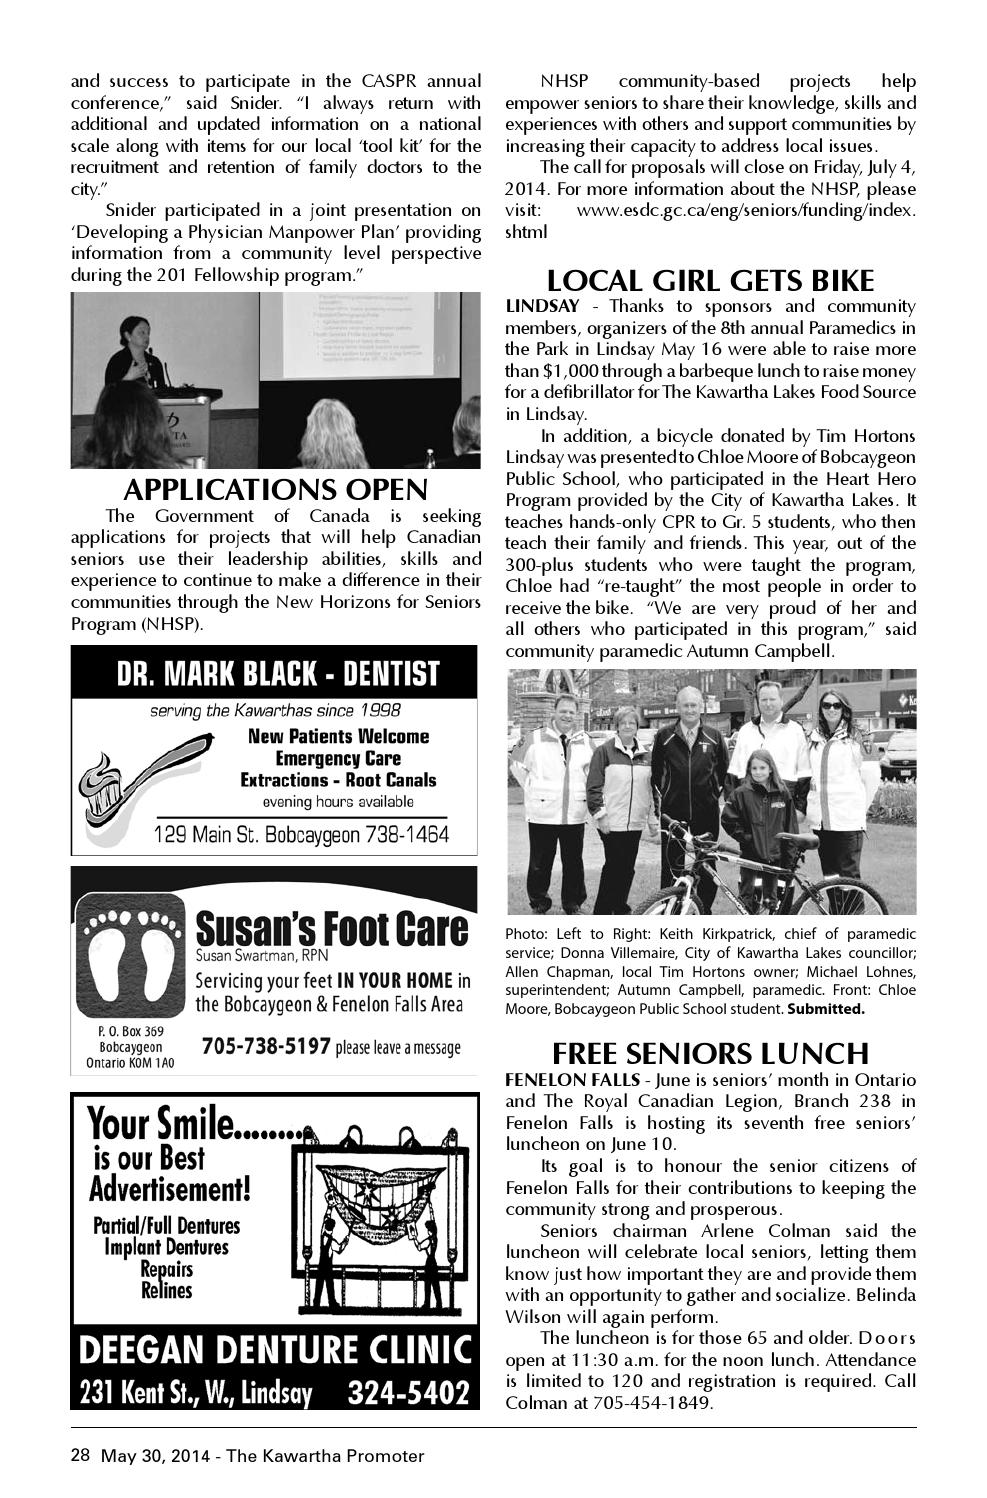 The Kawartha Promoter May 30 2014 by Max Miller - issuu